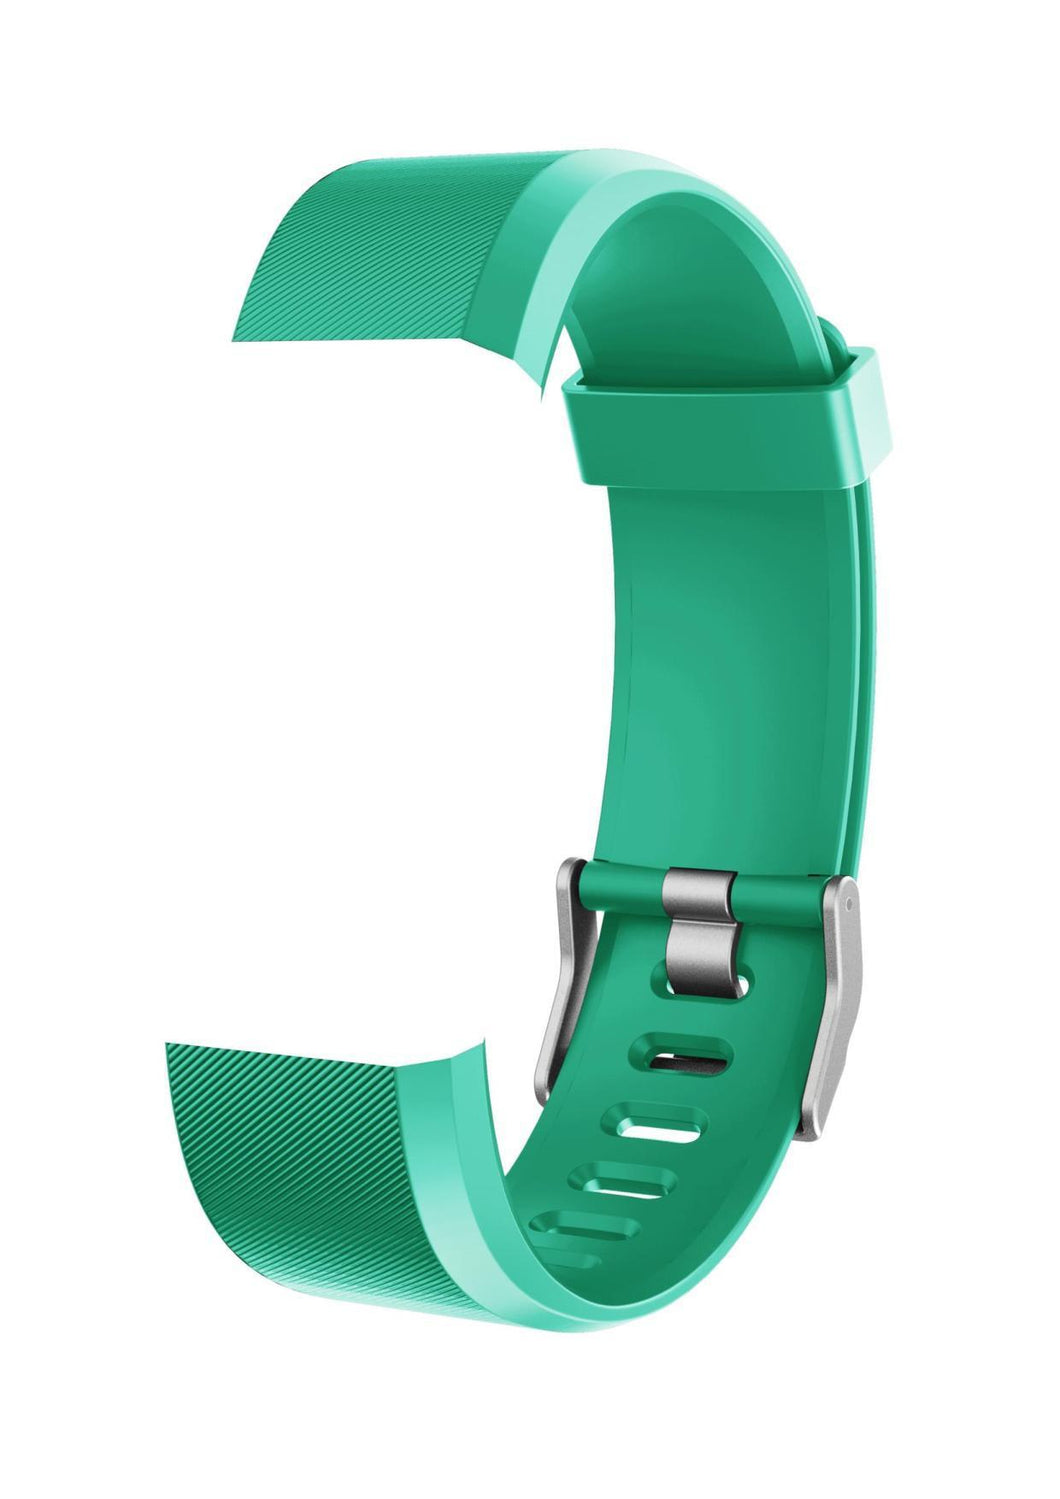 Tracker Max - Interchangeable Band - Green band for CAC-110-M12 Bands Cactus Watches